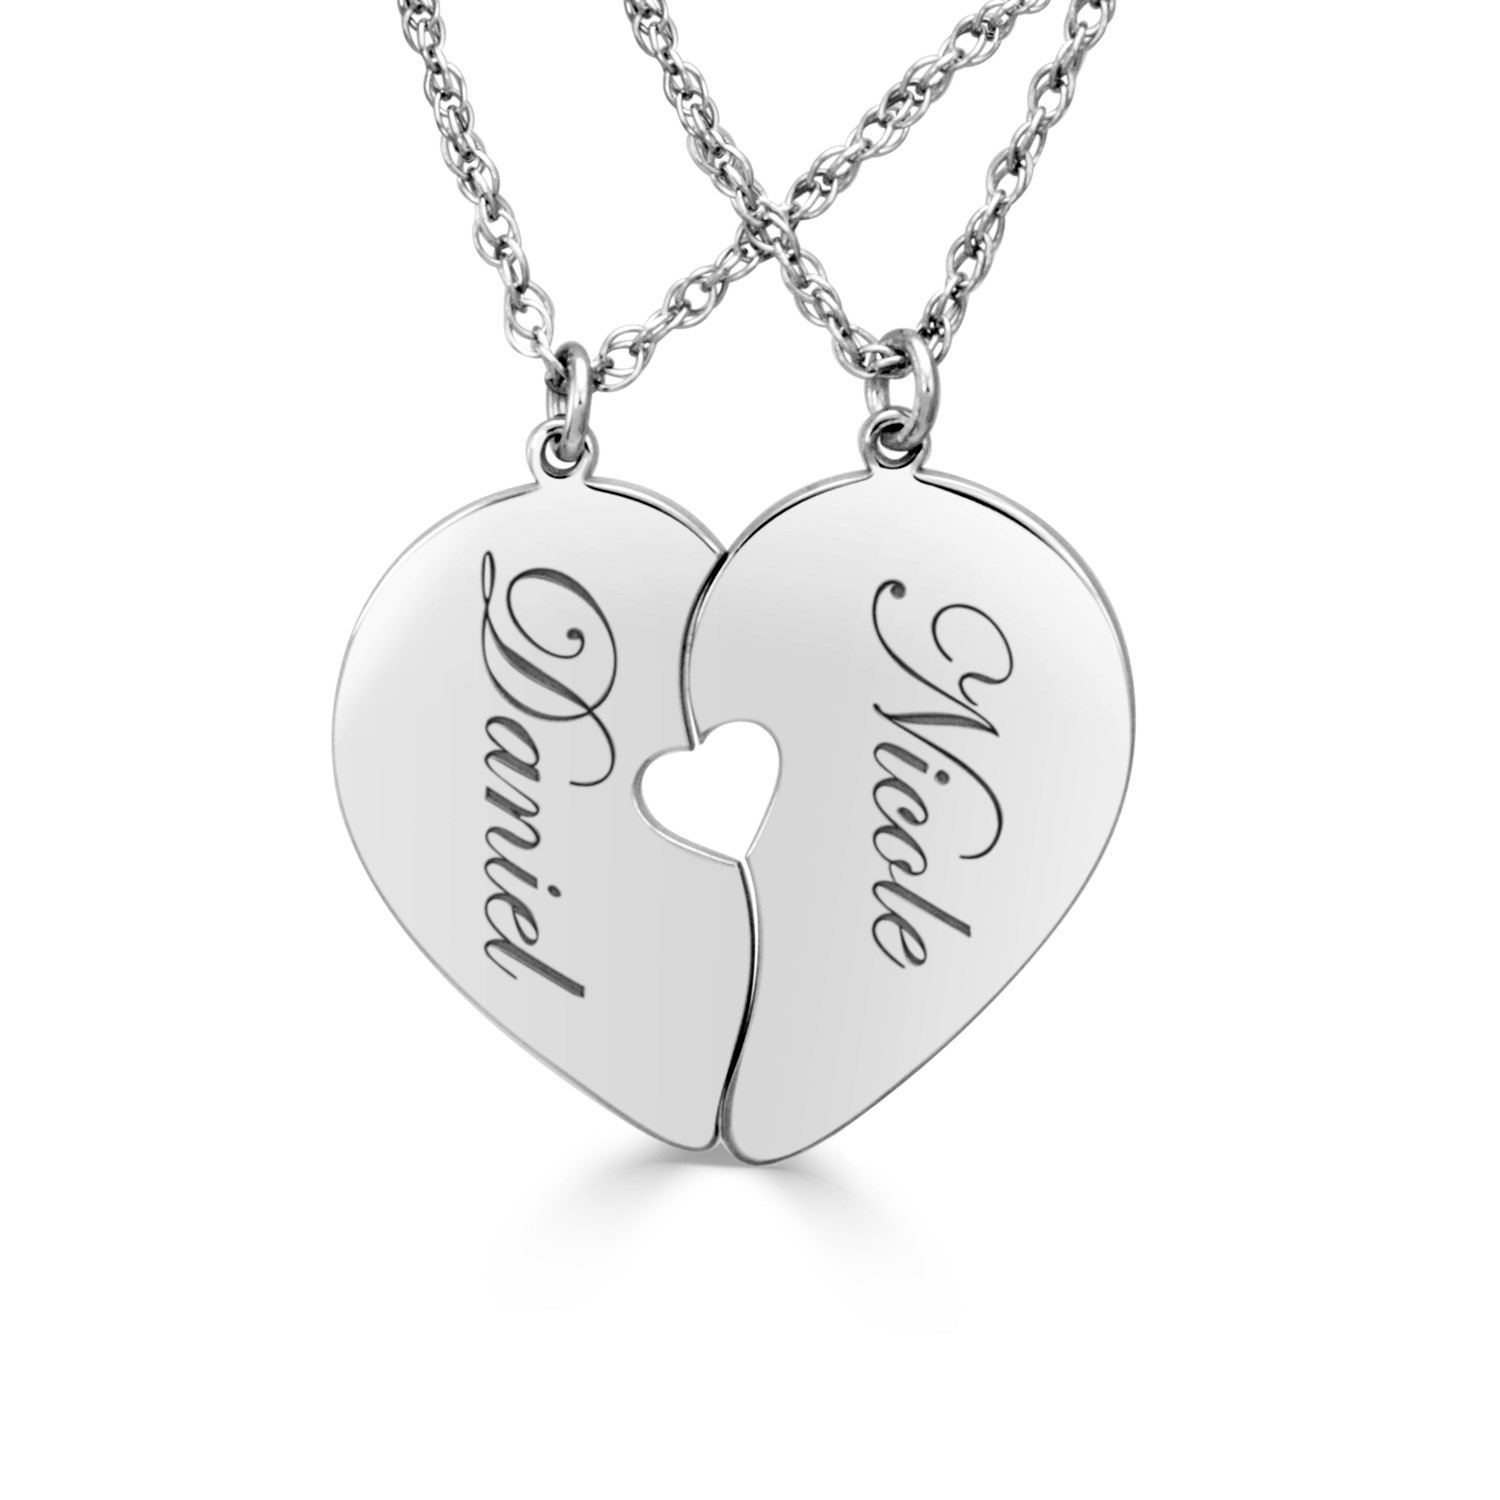 Engraved with Sterling Silver Necklace Heart Personalized Name Necklaces for your love